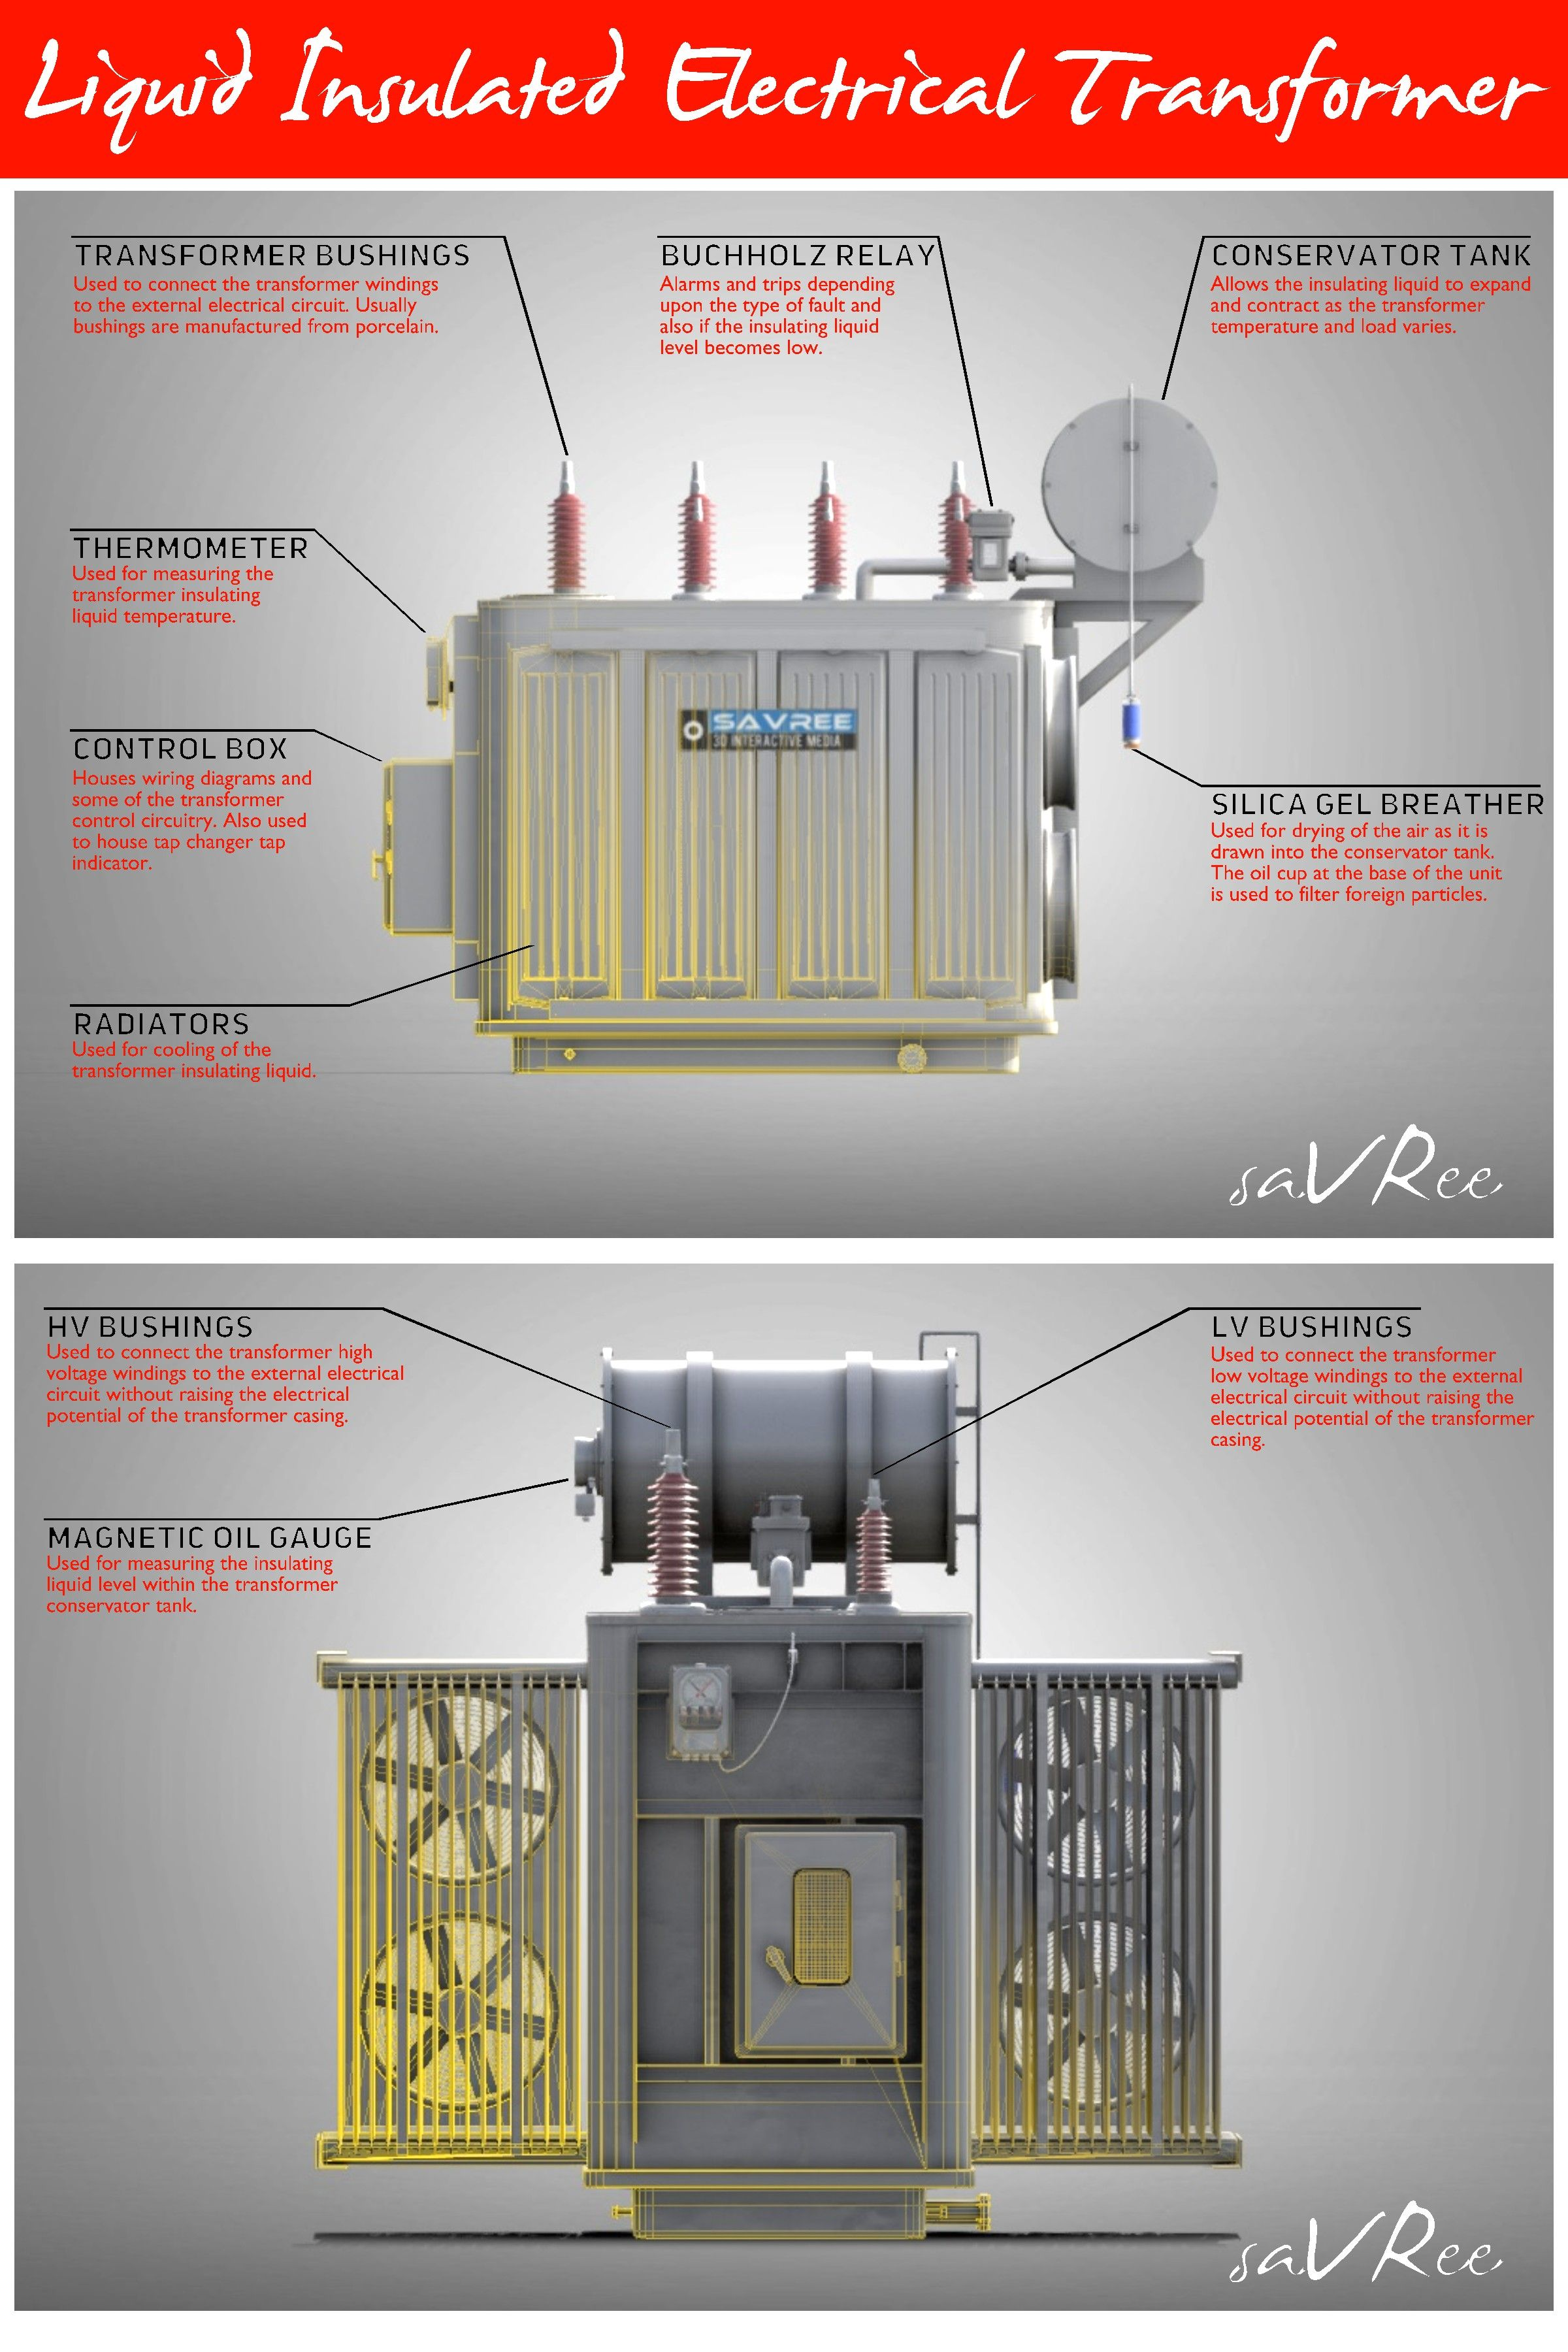 this pin shows the liquid insulated electrical transformer used in the power engineering industry its [ 2400 x 3600 Pixel ]